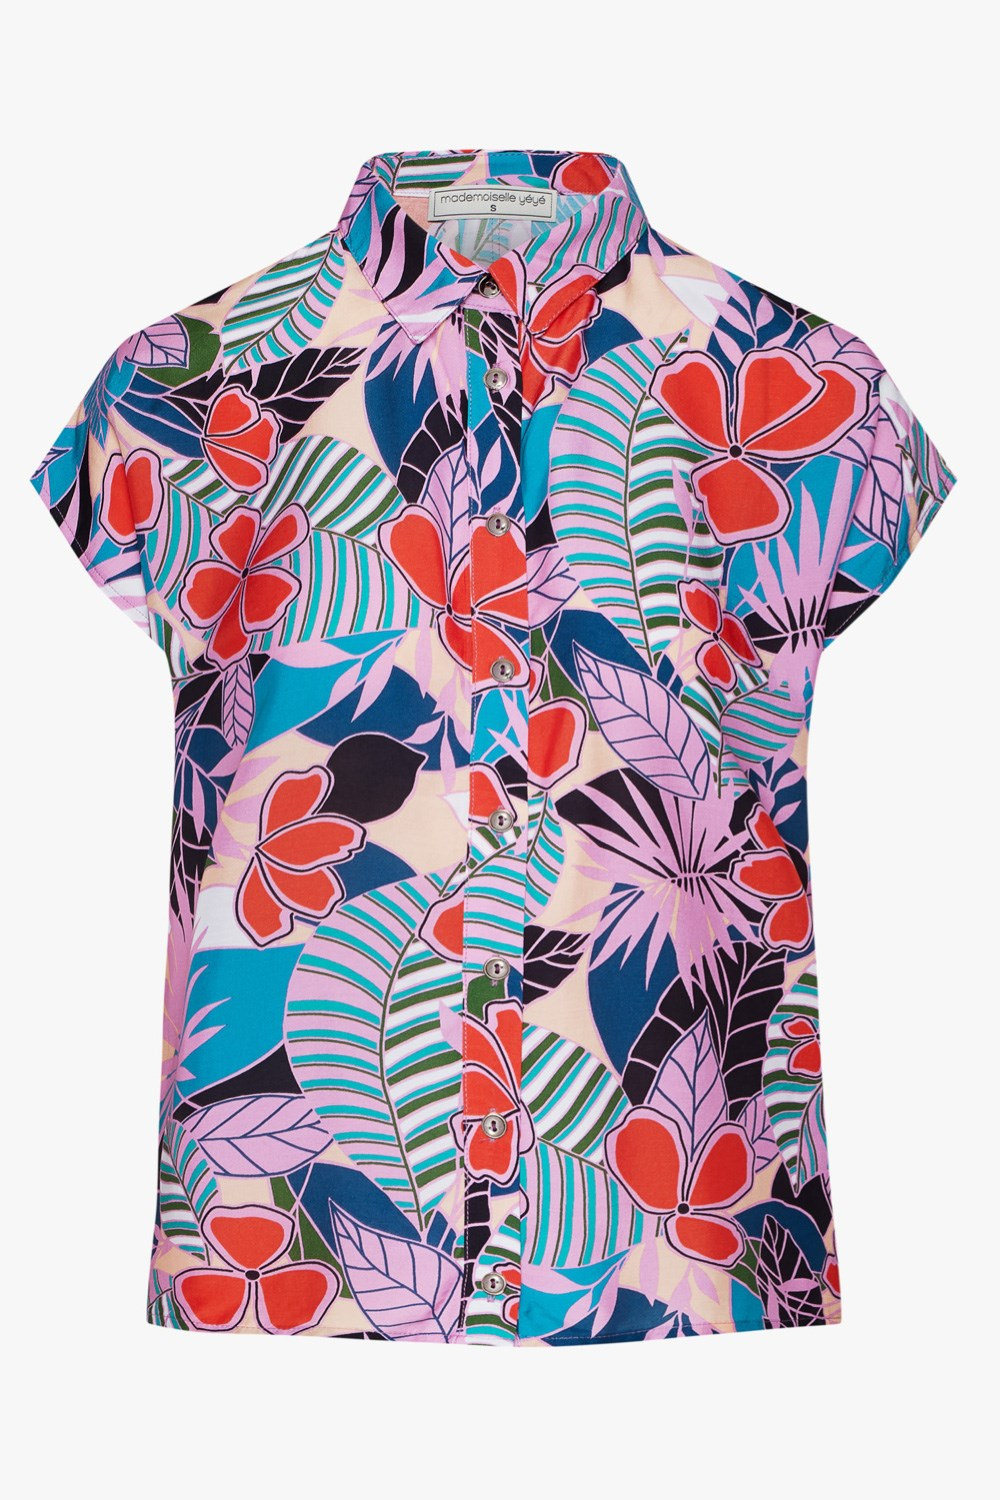 Here comes the summer blouse